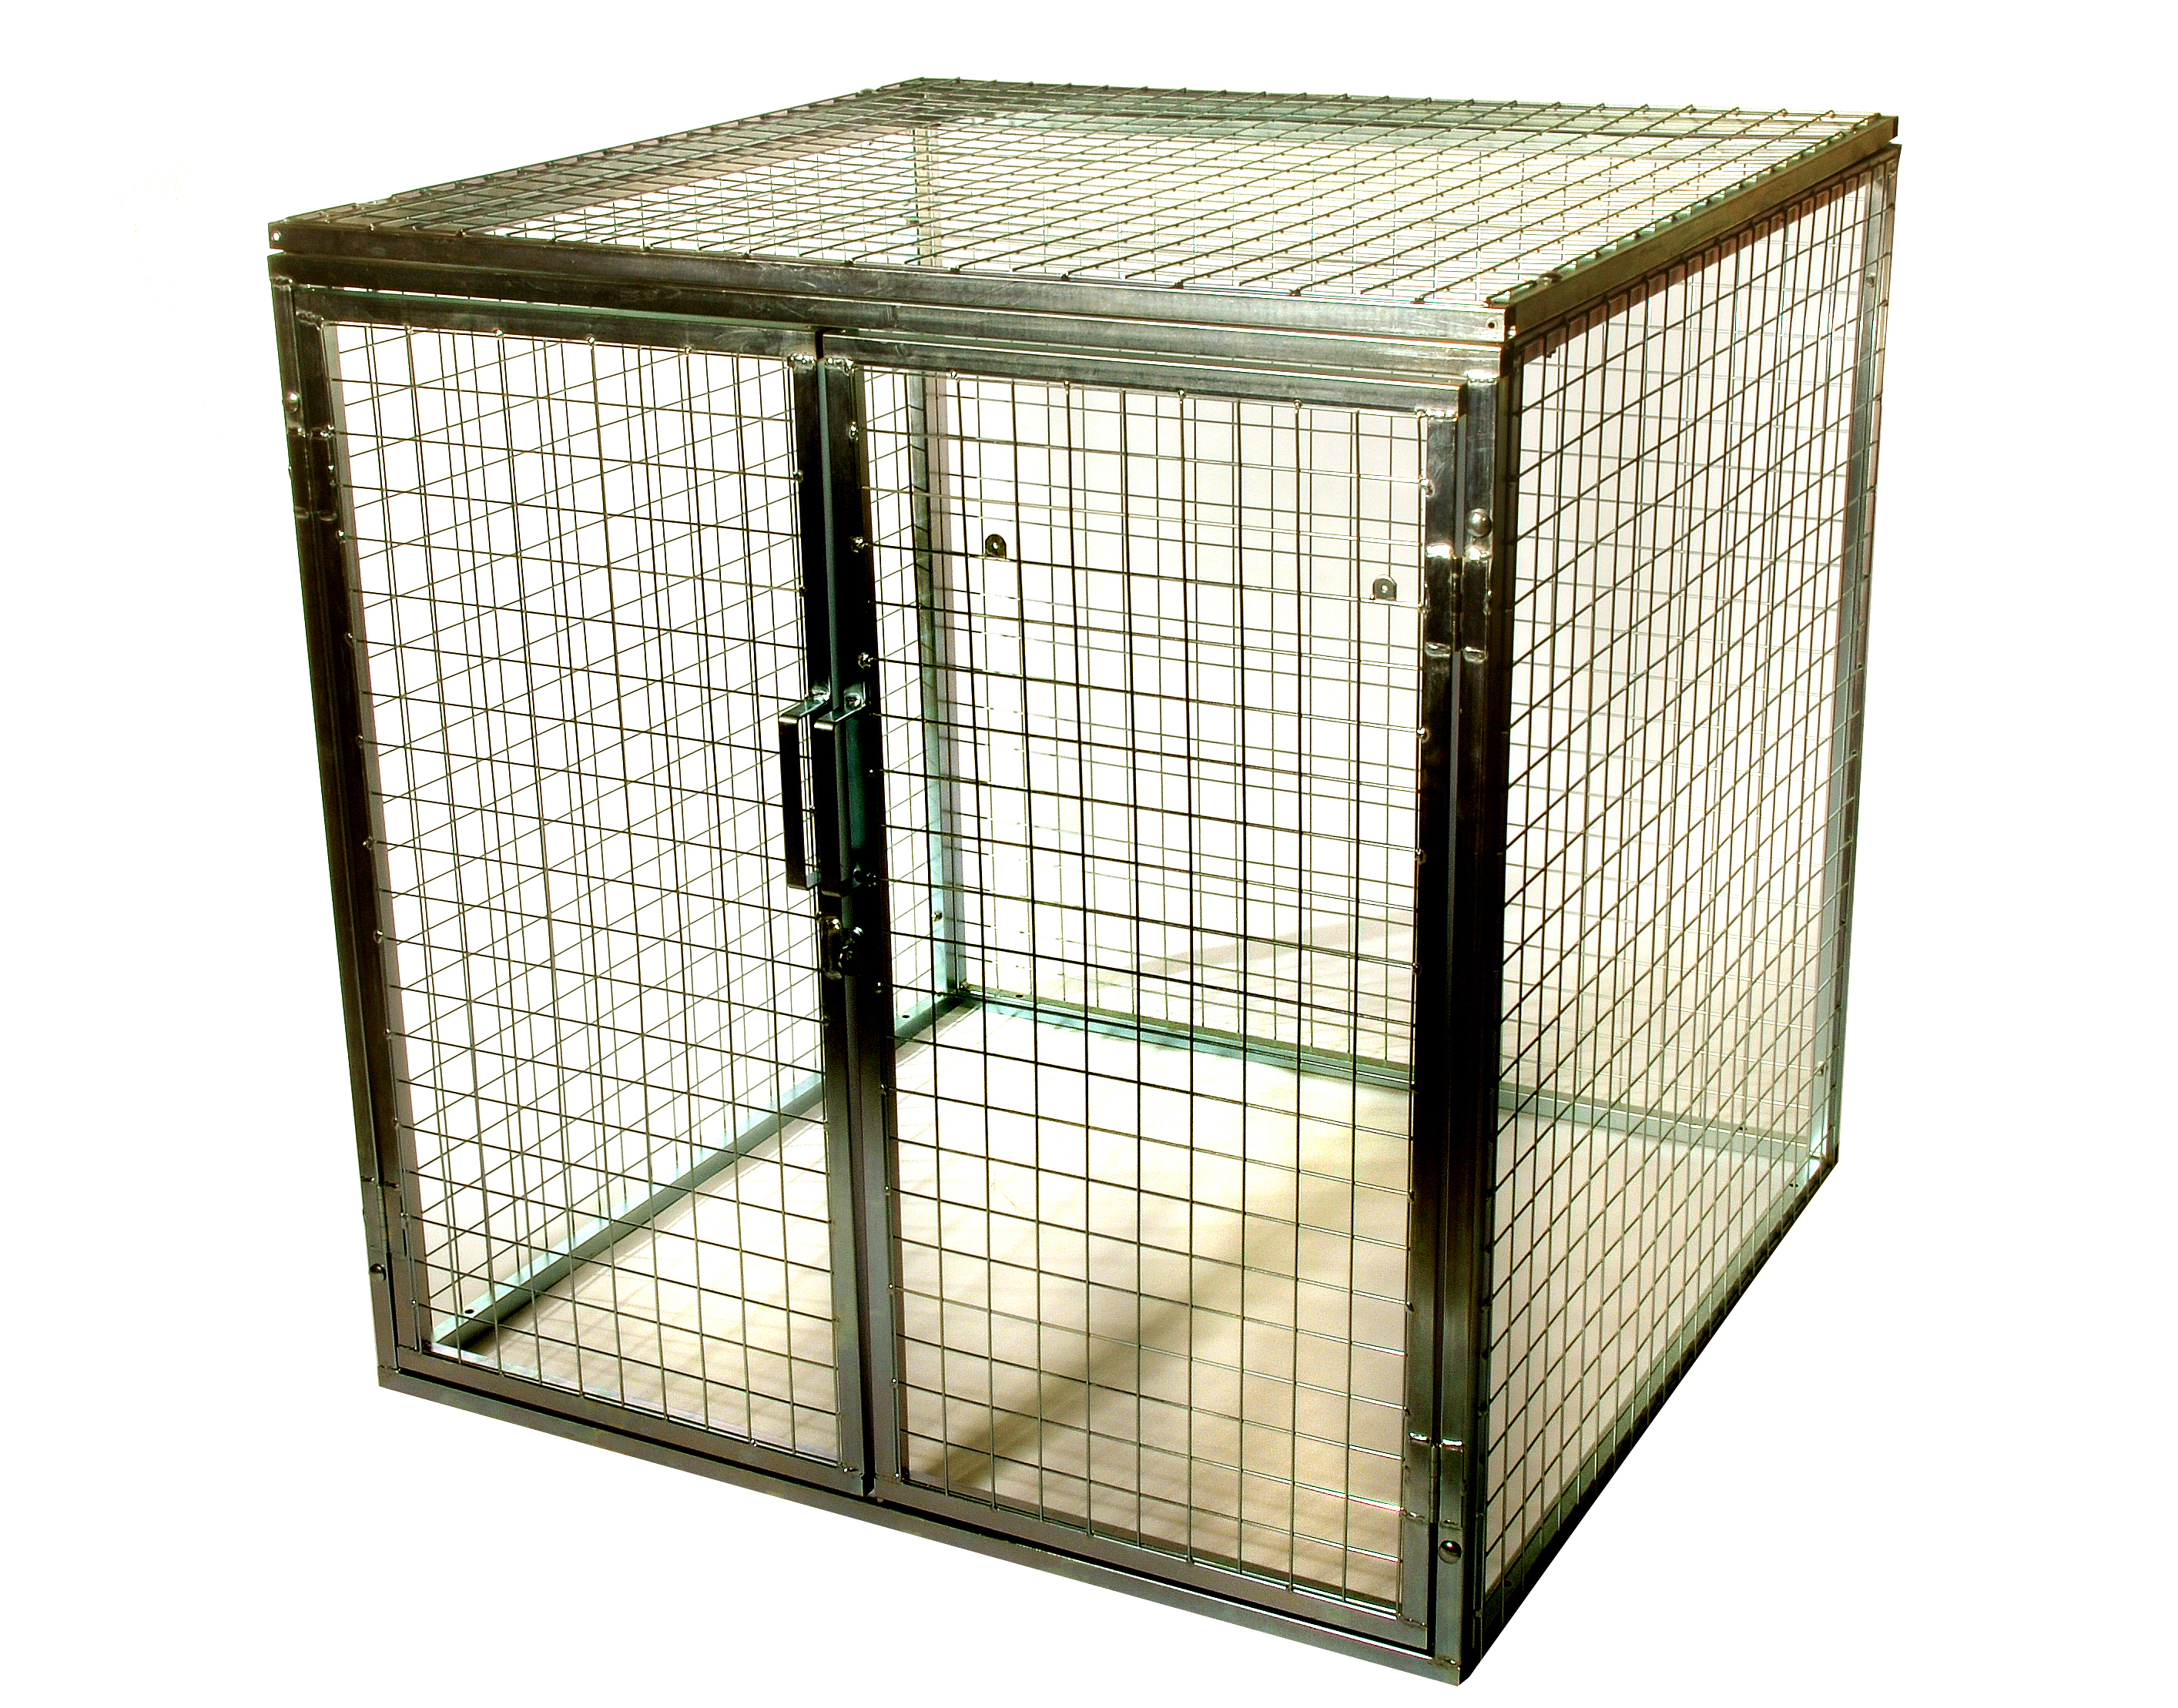 Guardian Cage Bzp 18 Hazstoredirect